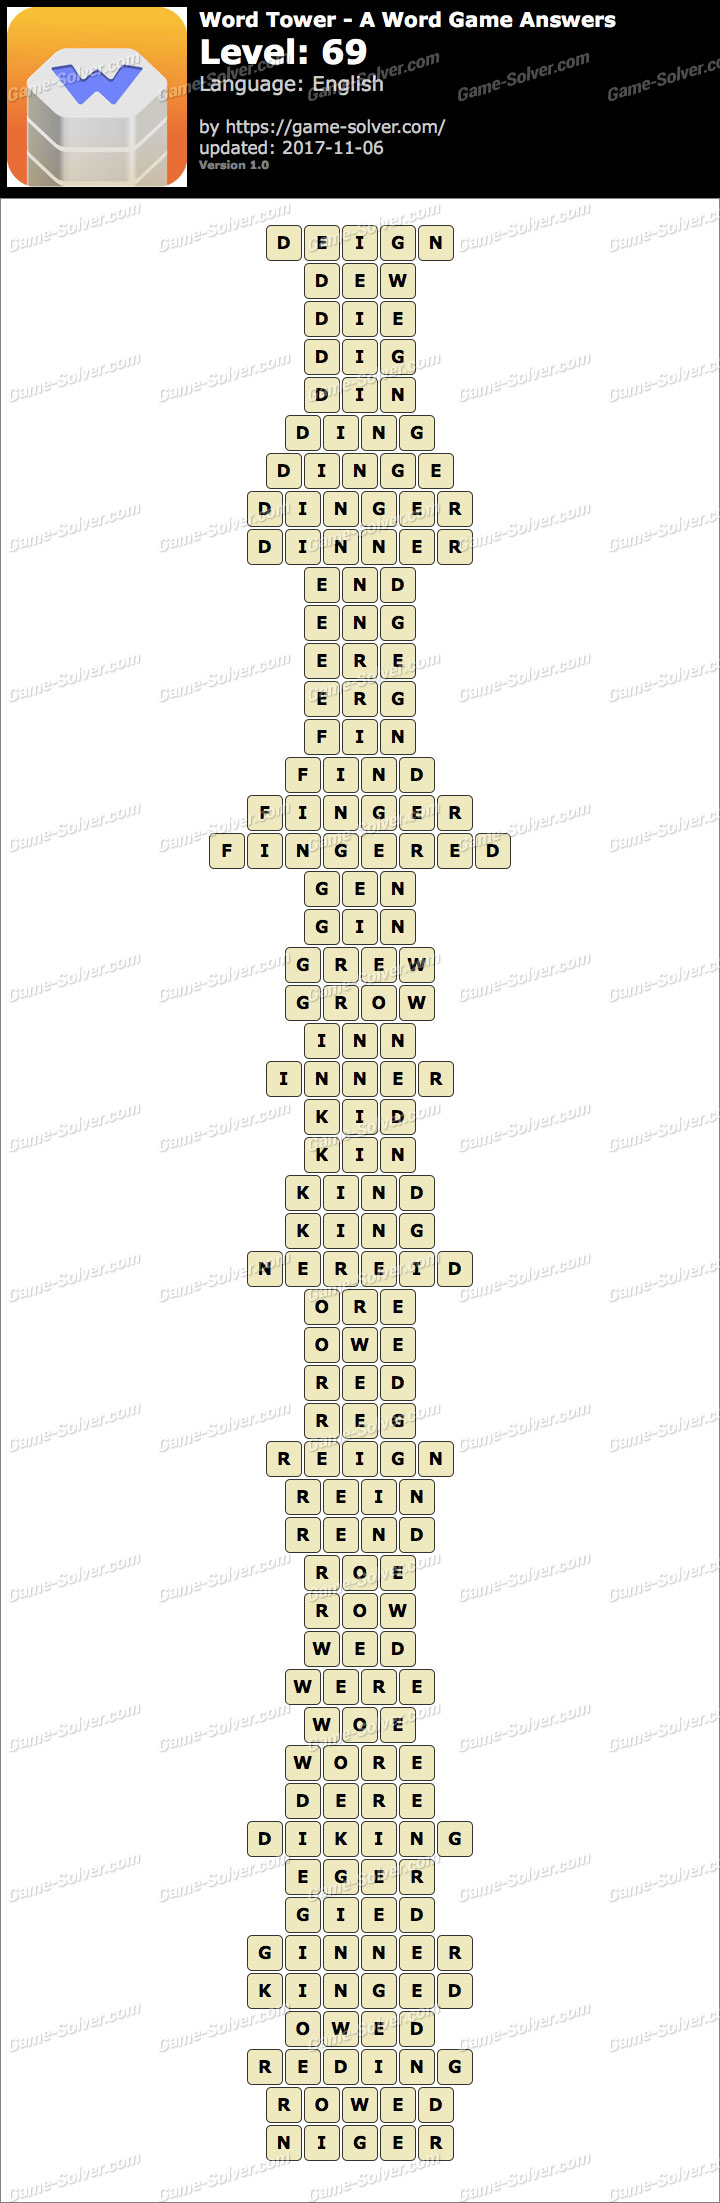 Word Tower Level 69 Answers